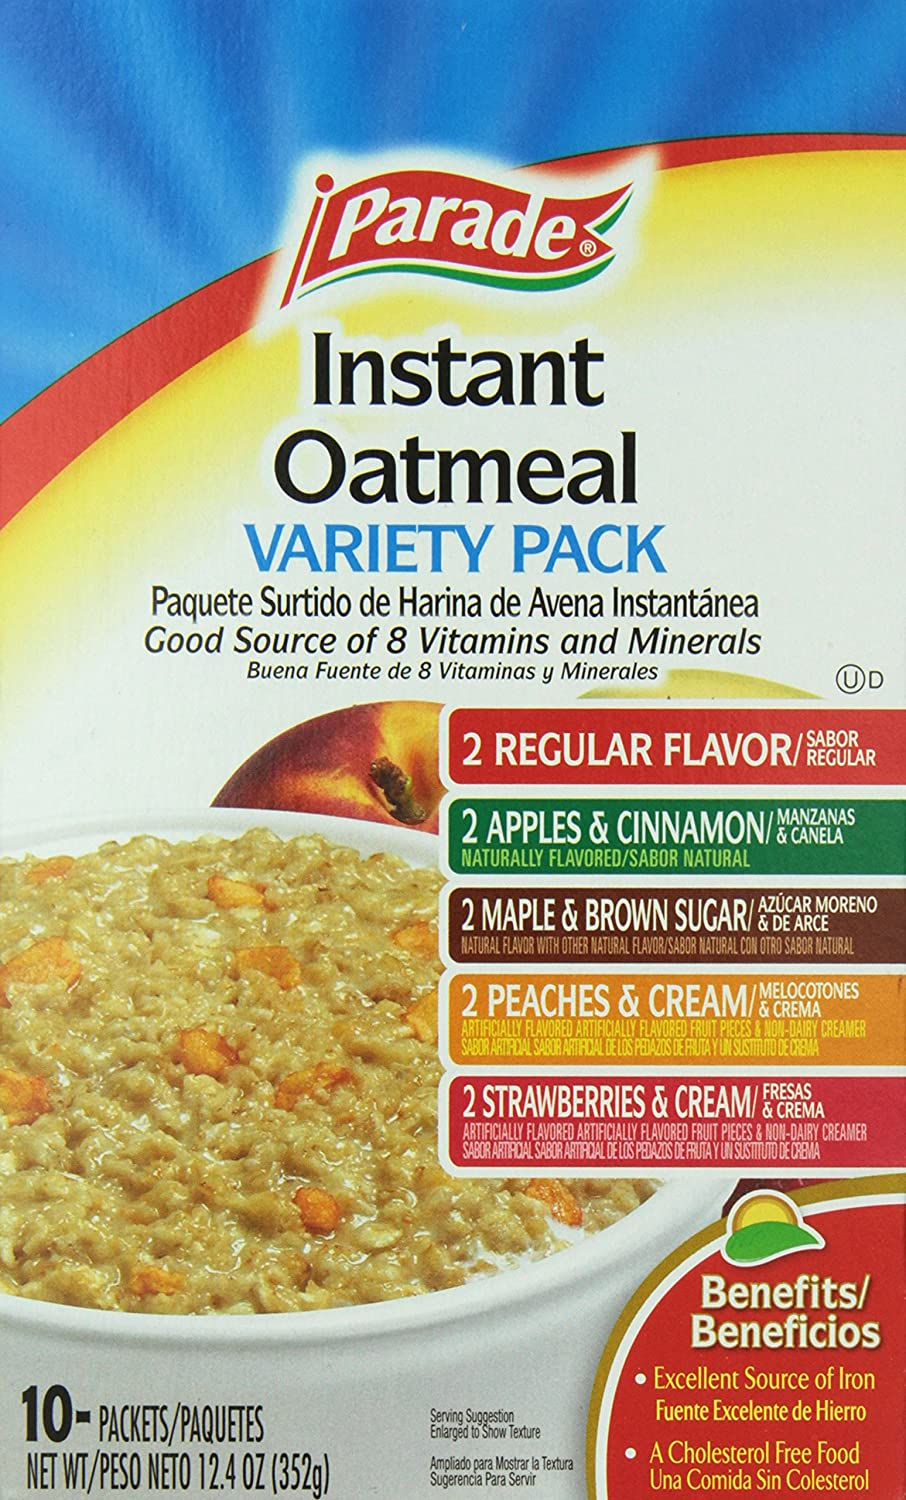 Parade instant Oatmeal Variety Pack, 10 Packets, 12.5 Ounce: Amazon.com: Grocery & Gourmet Food